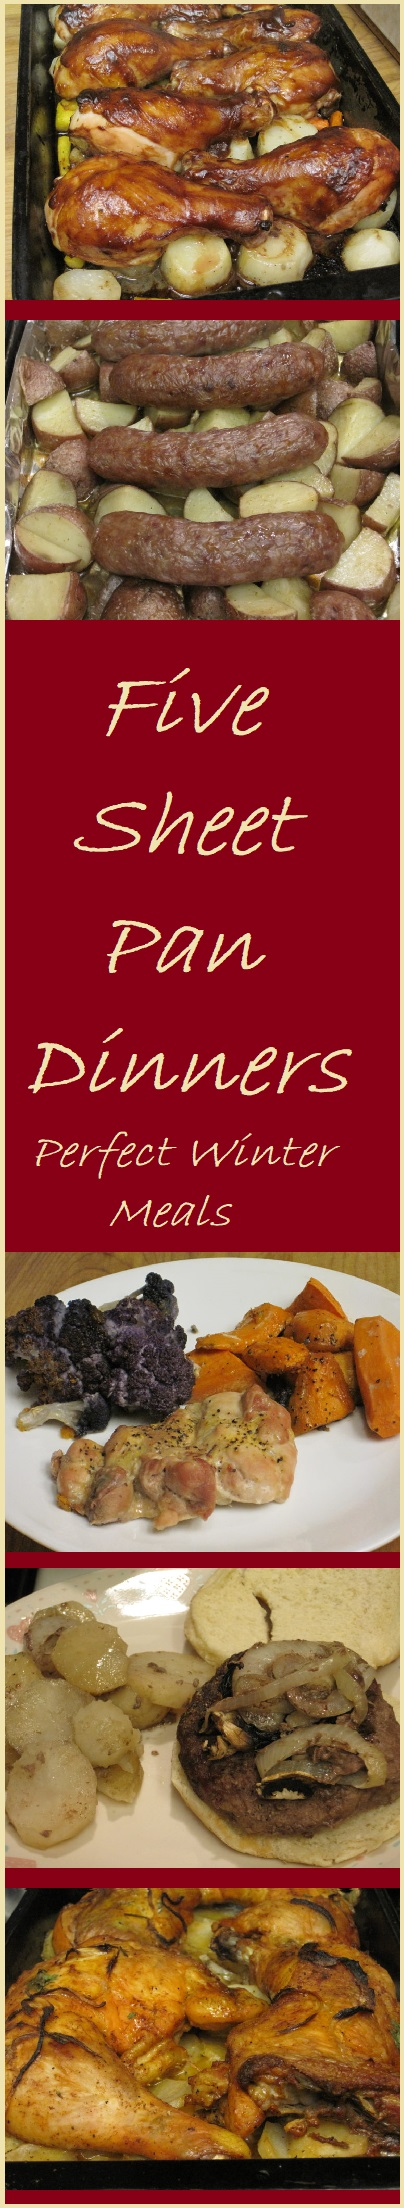 Five Sheet Pan Dinners--Perfect Winter Meals